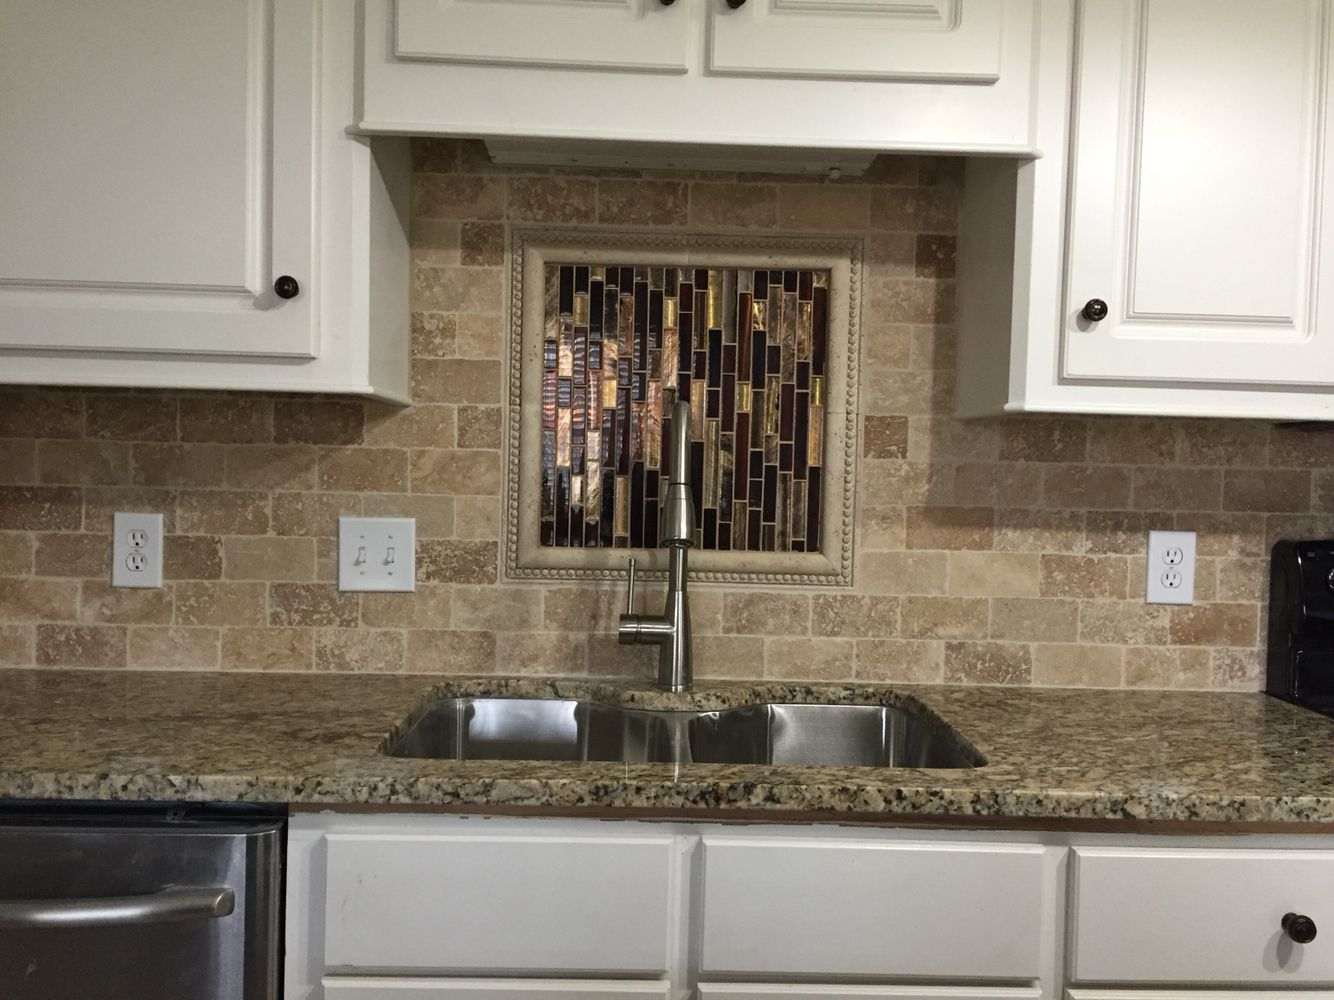 Backsplash Behind Sink Noce Tumbled Stone Kitchen Backsplash With Custom Design Over Sink